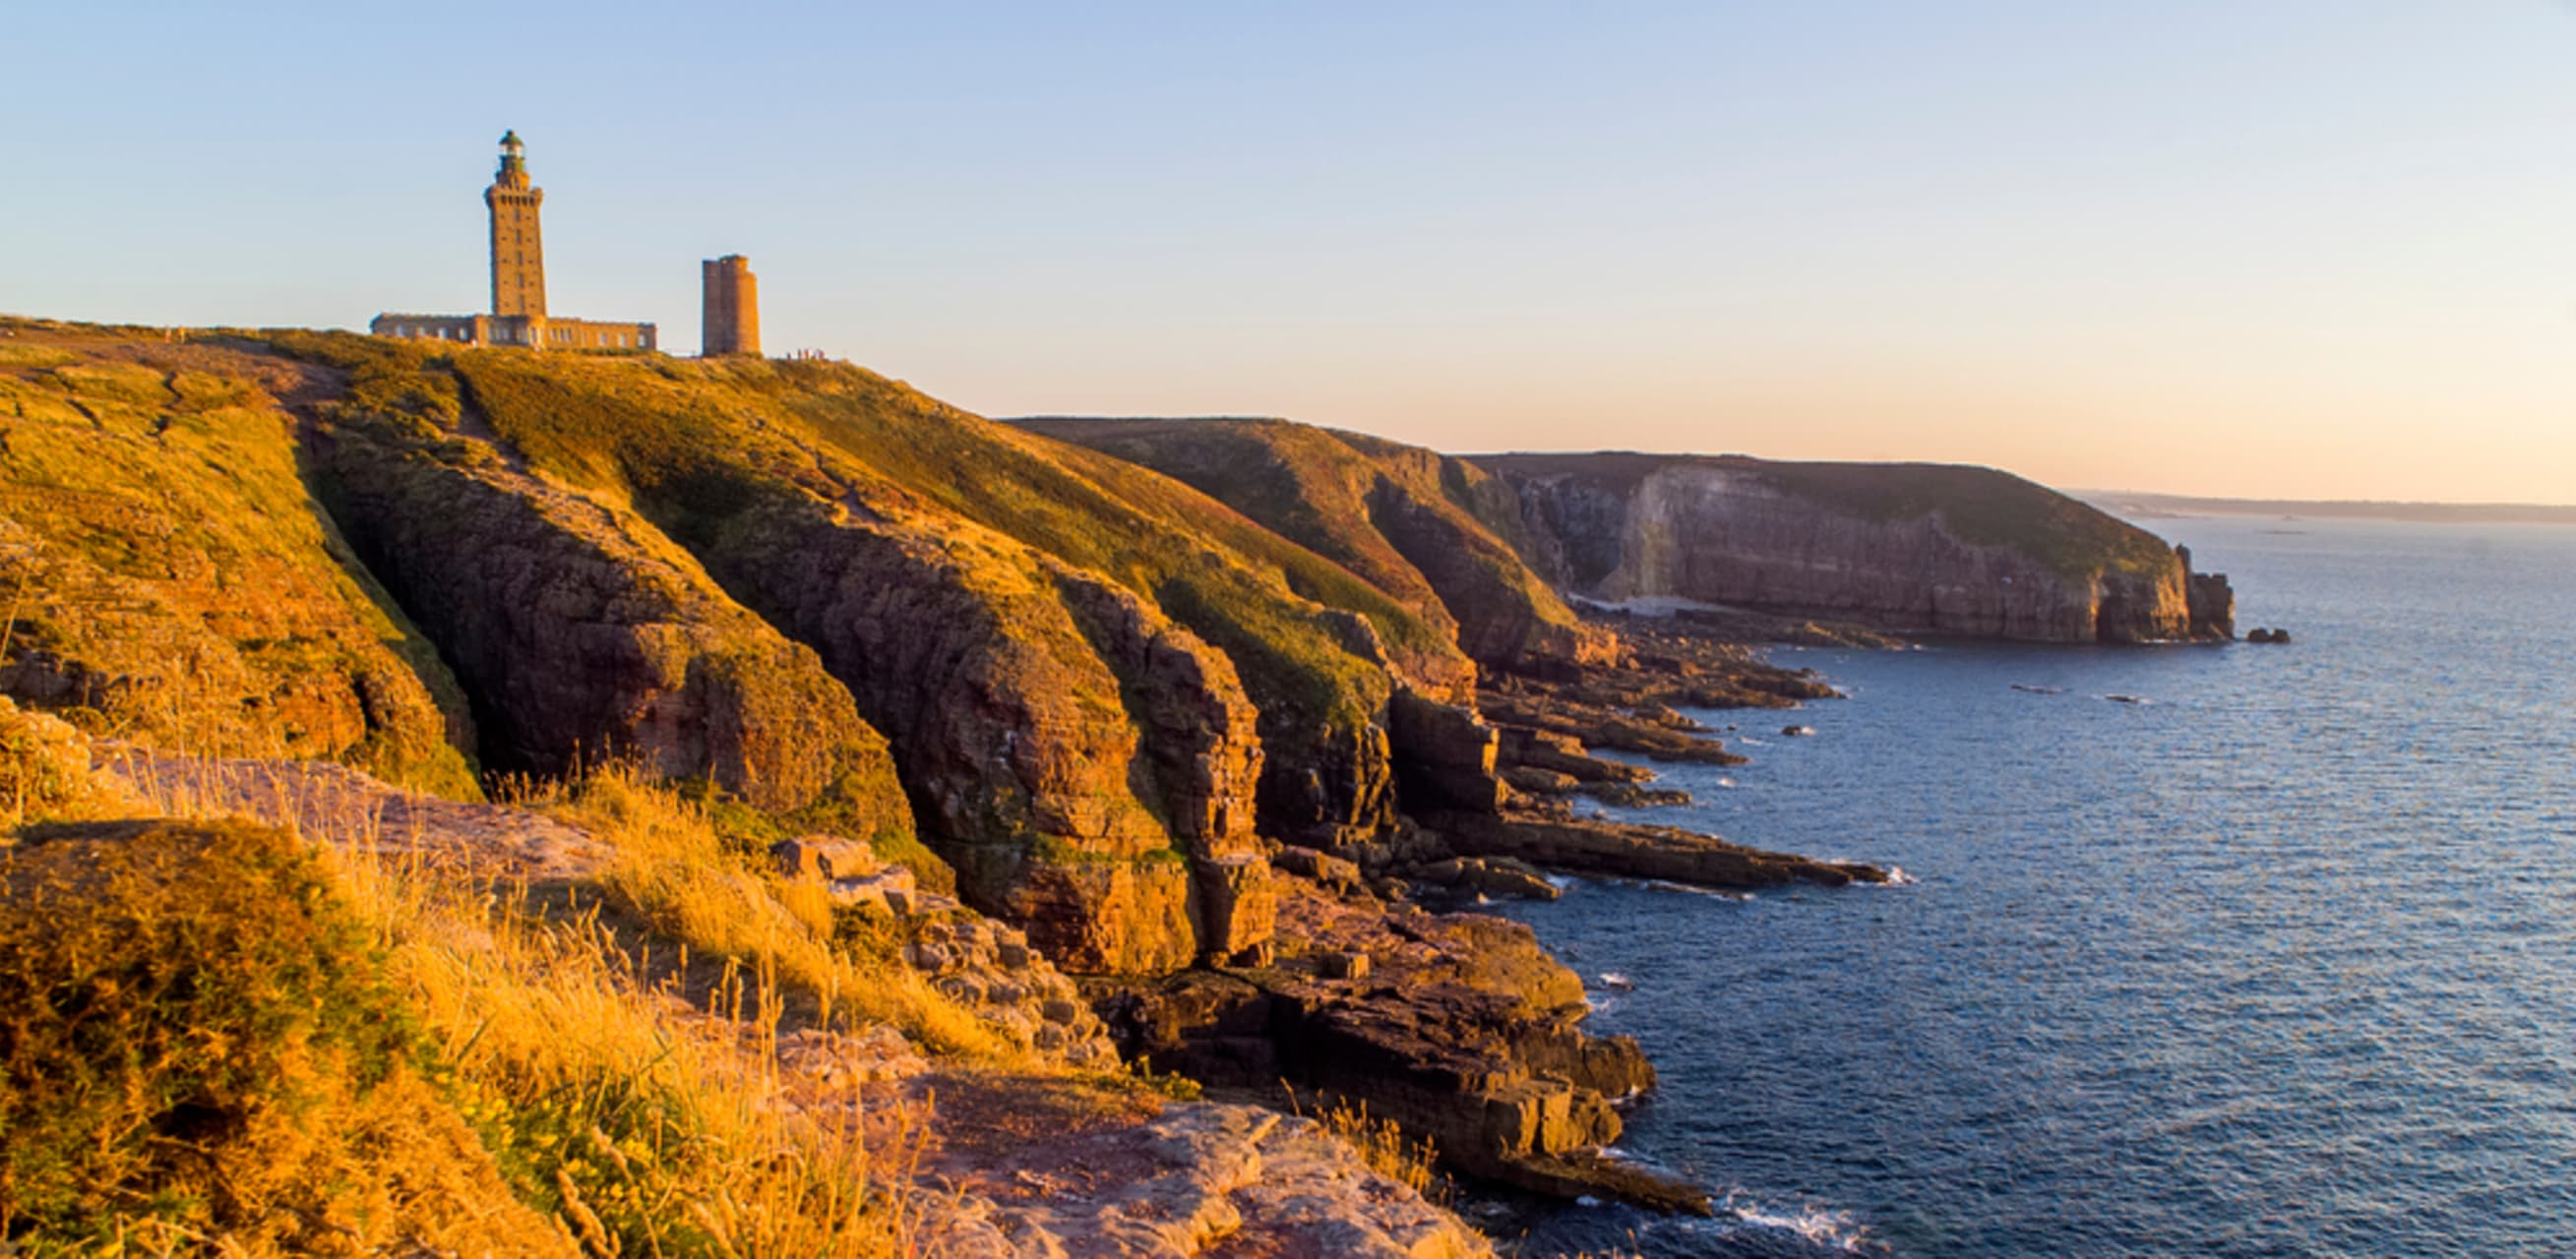 Brittany North - The exceptional site of Cap Frehel